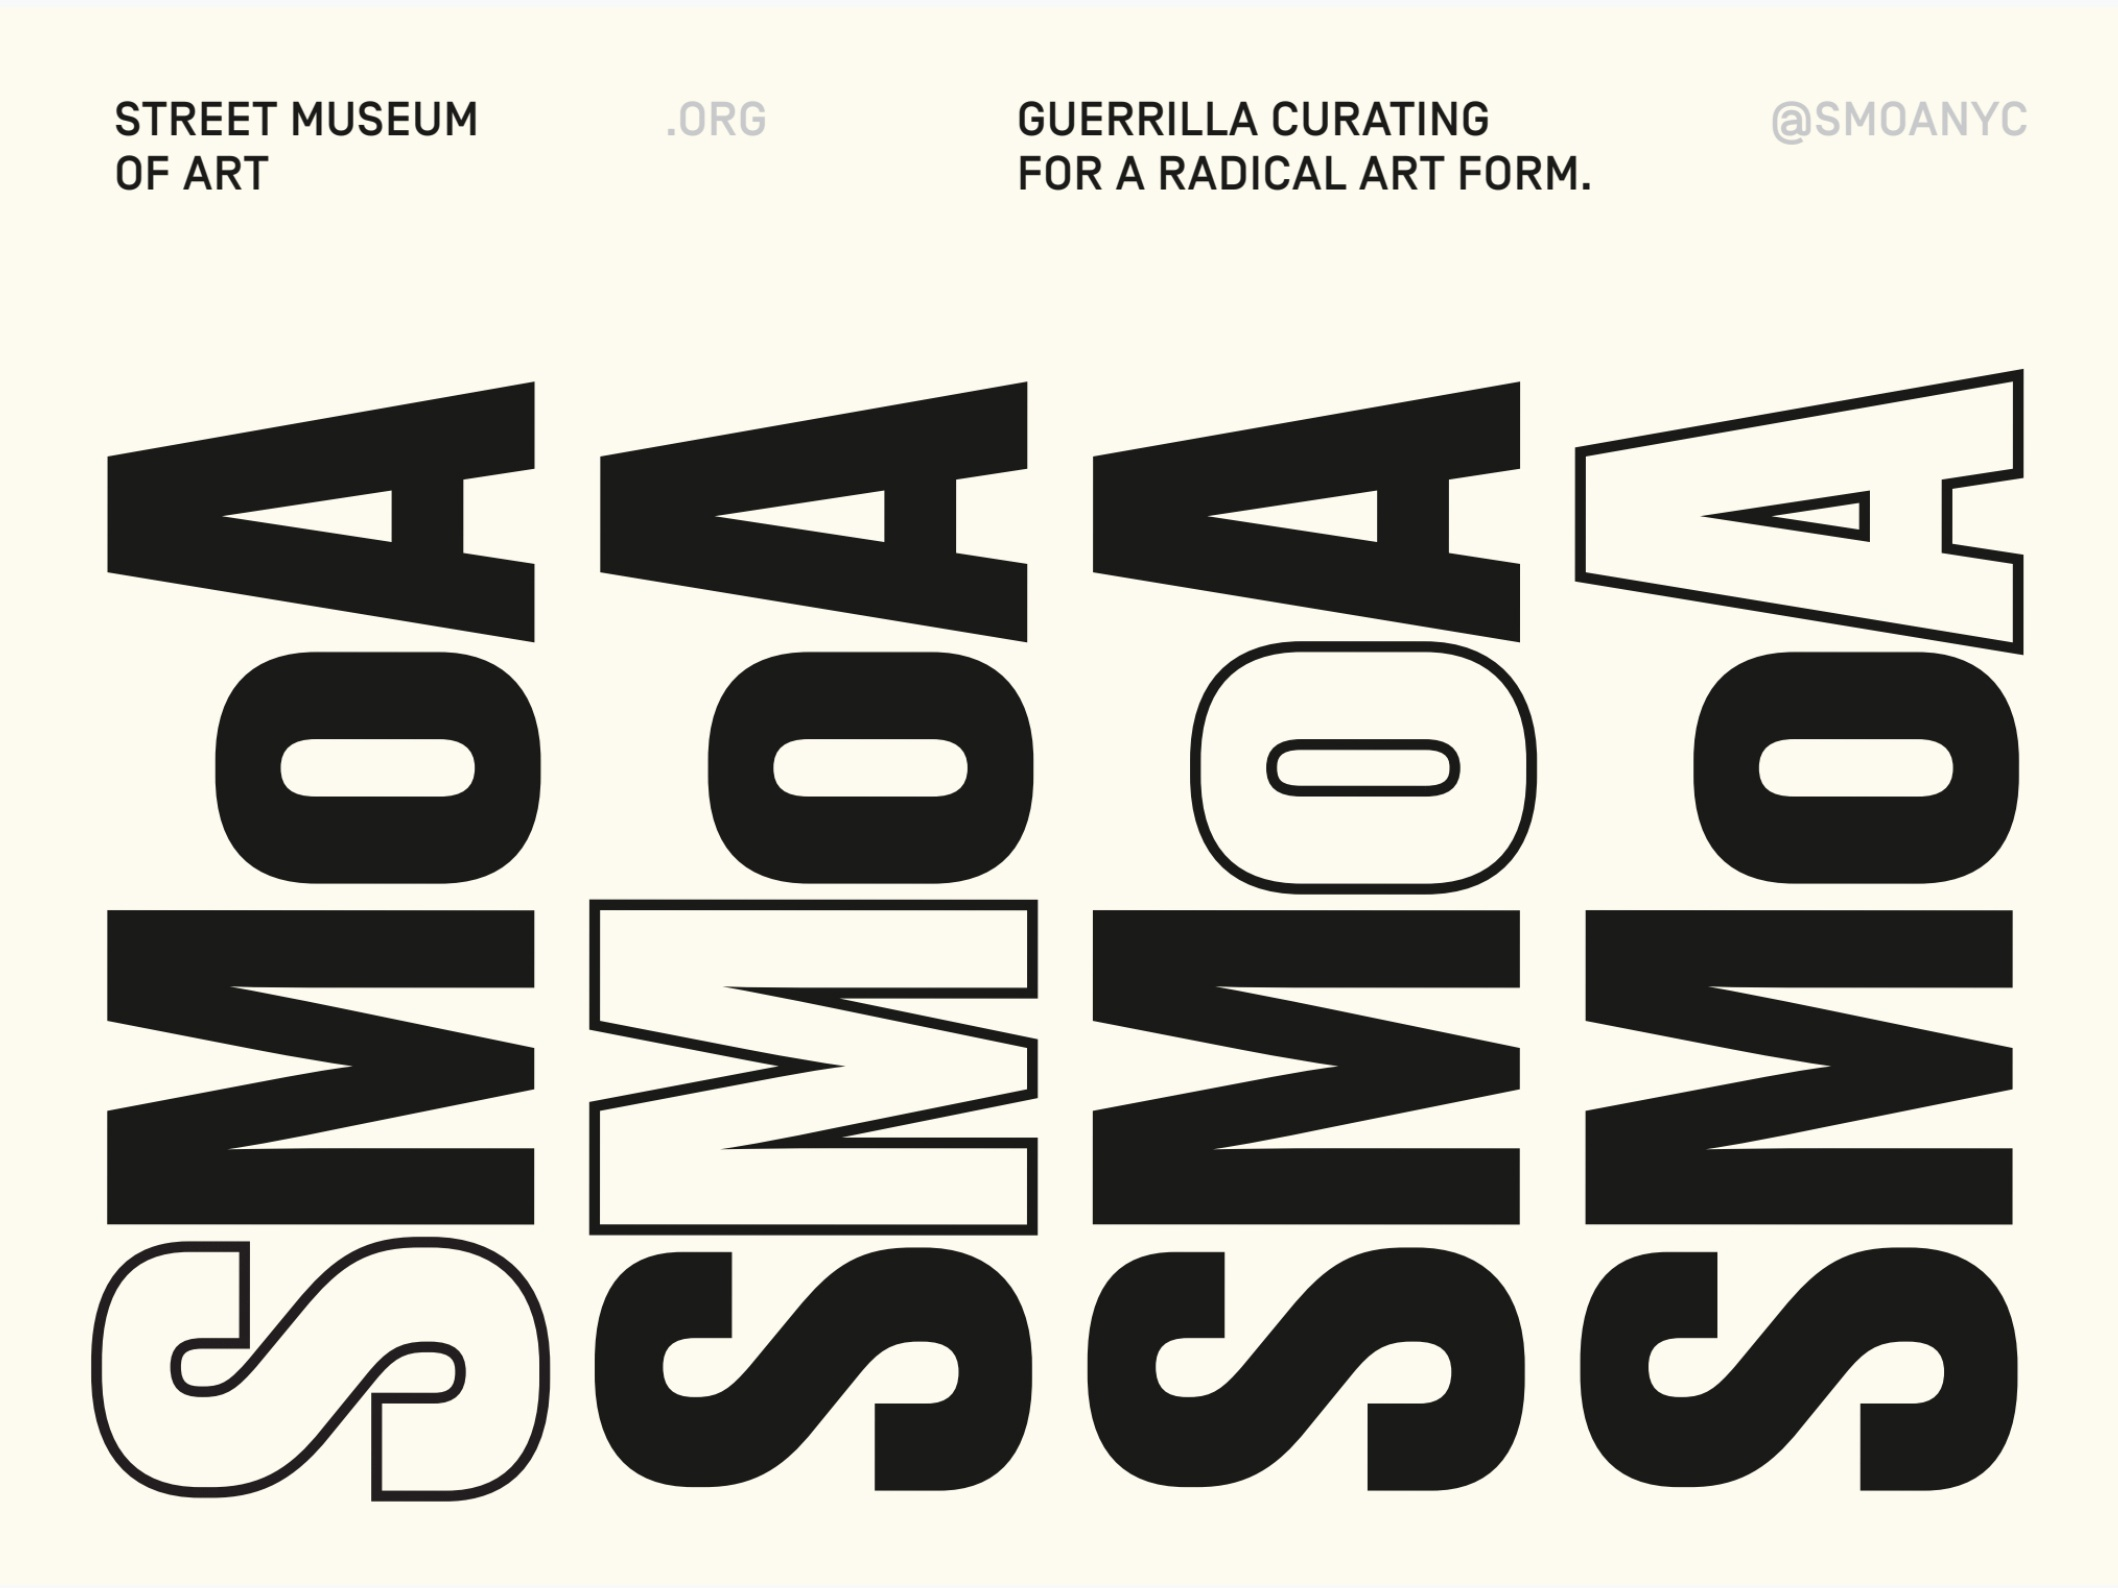 MuseumPostercard.001—Street Museum of Art